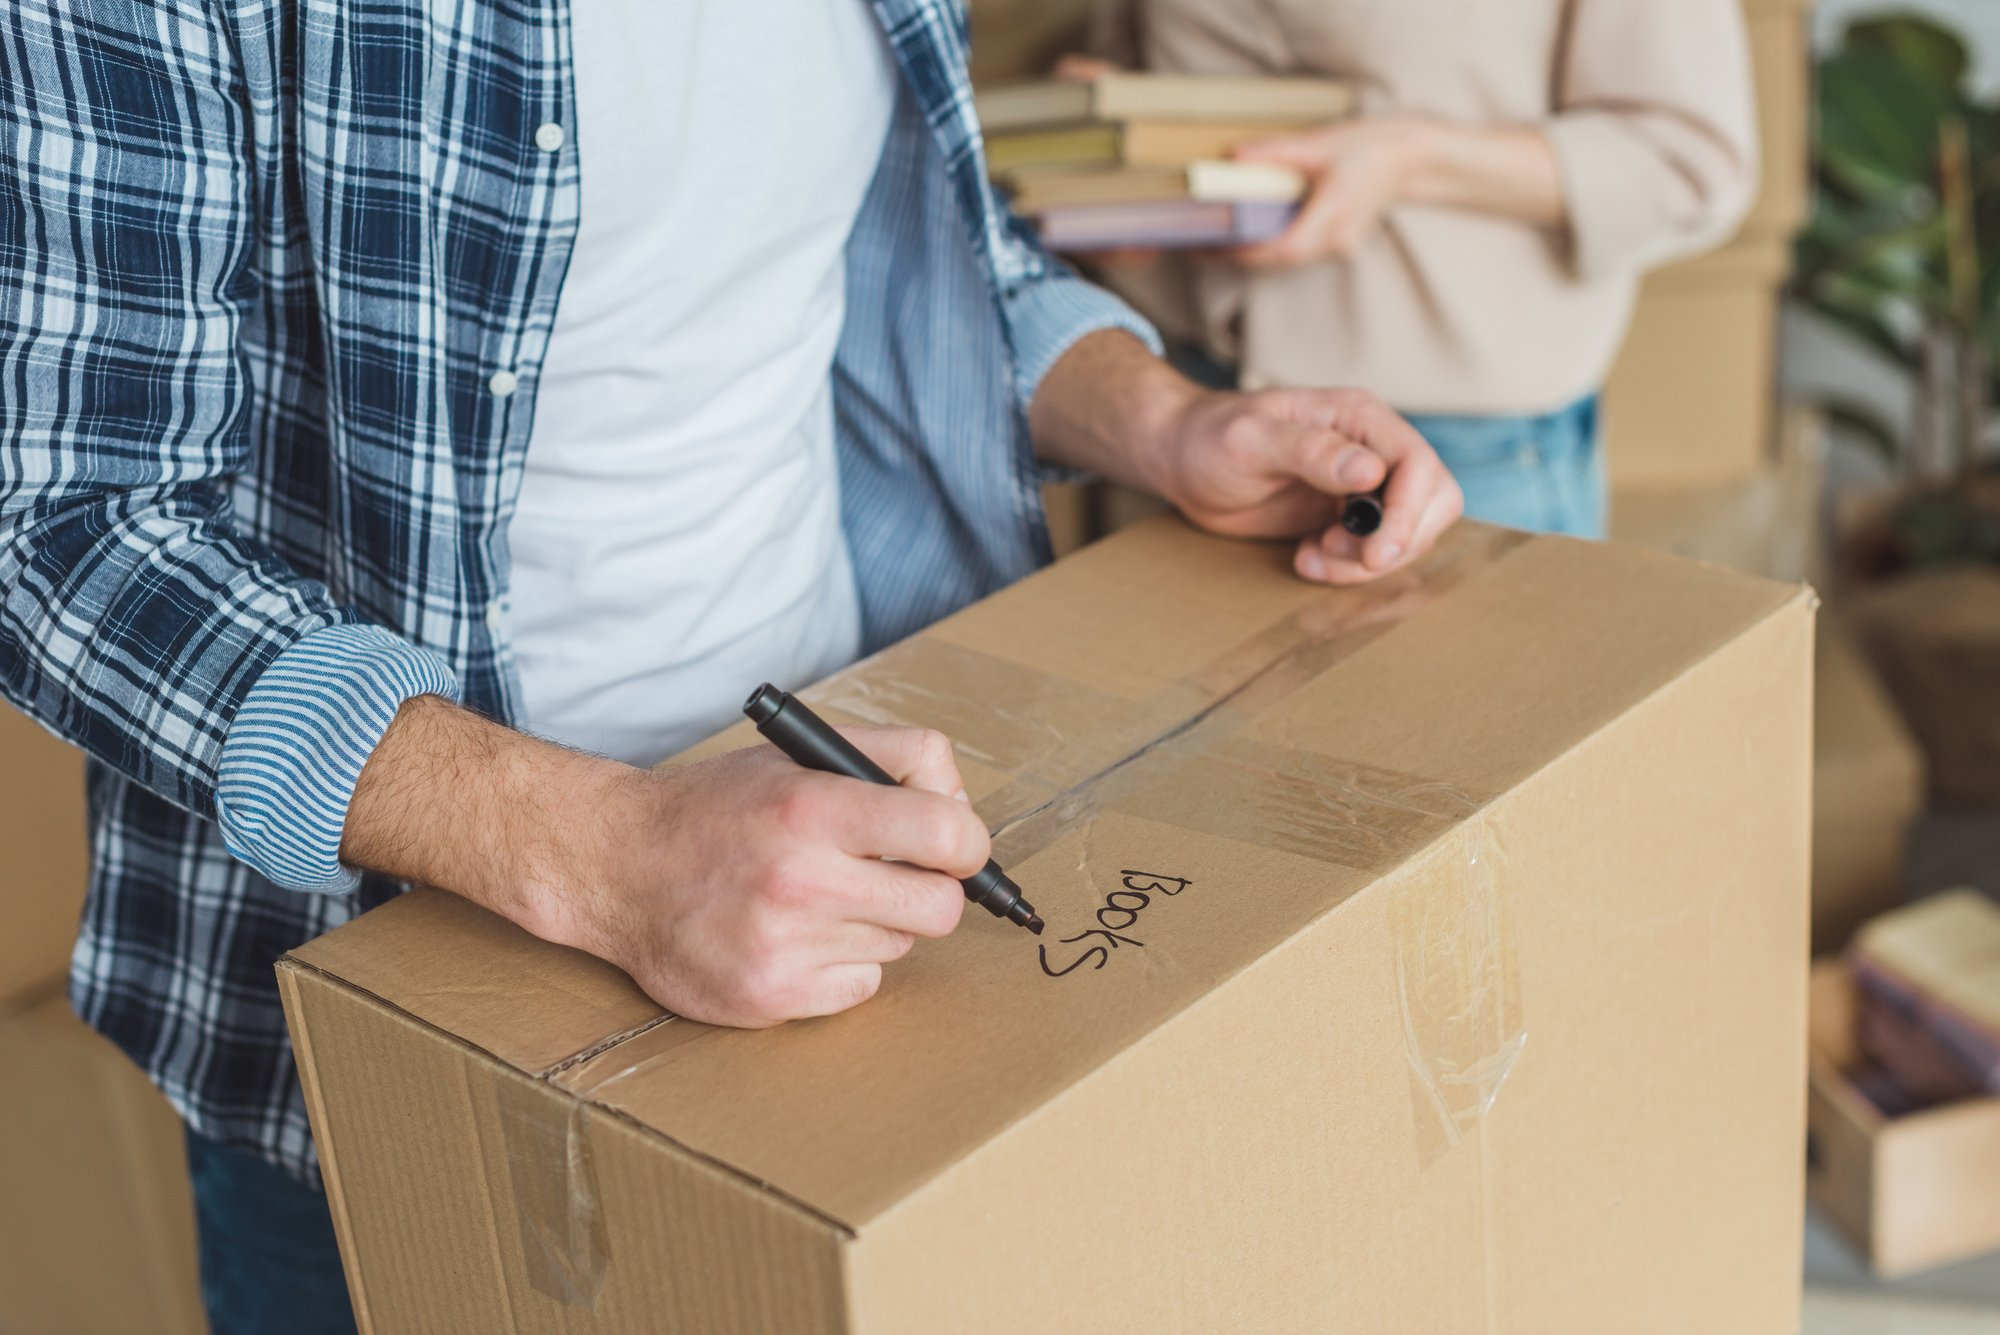 Easy Tricks to Make Moving Process Effortless